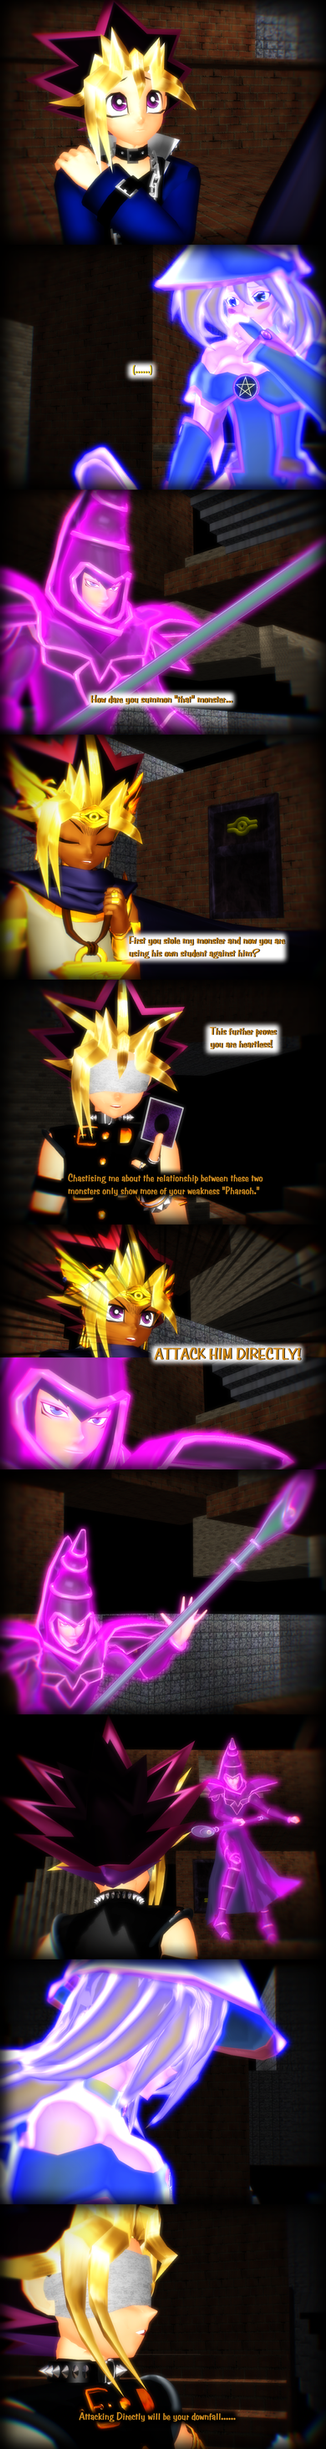 yugioh true king of games page 9 by askmmdyugi on deviantart